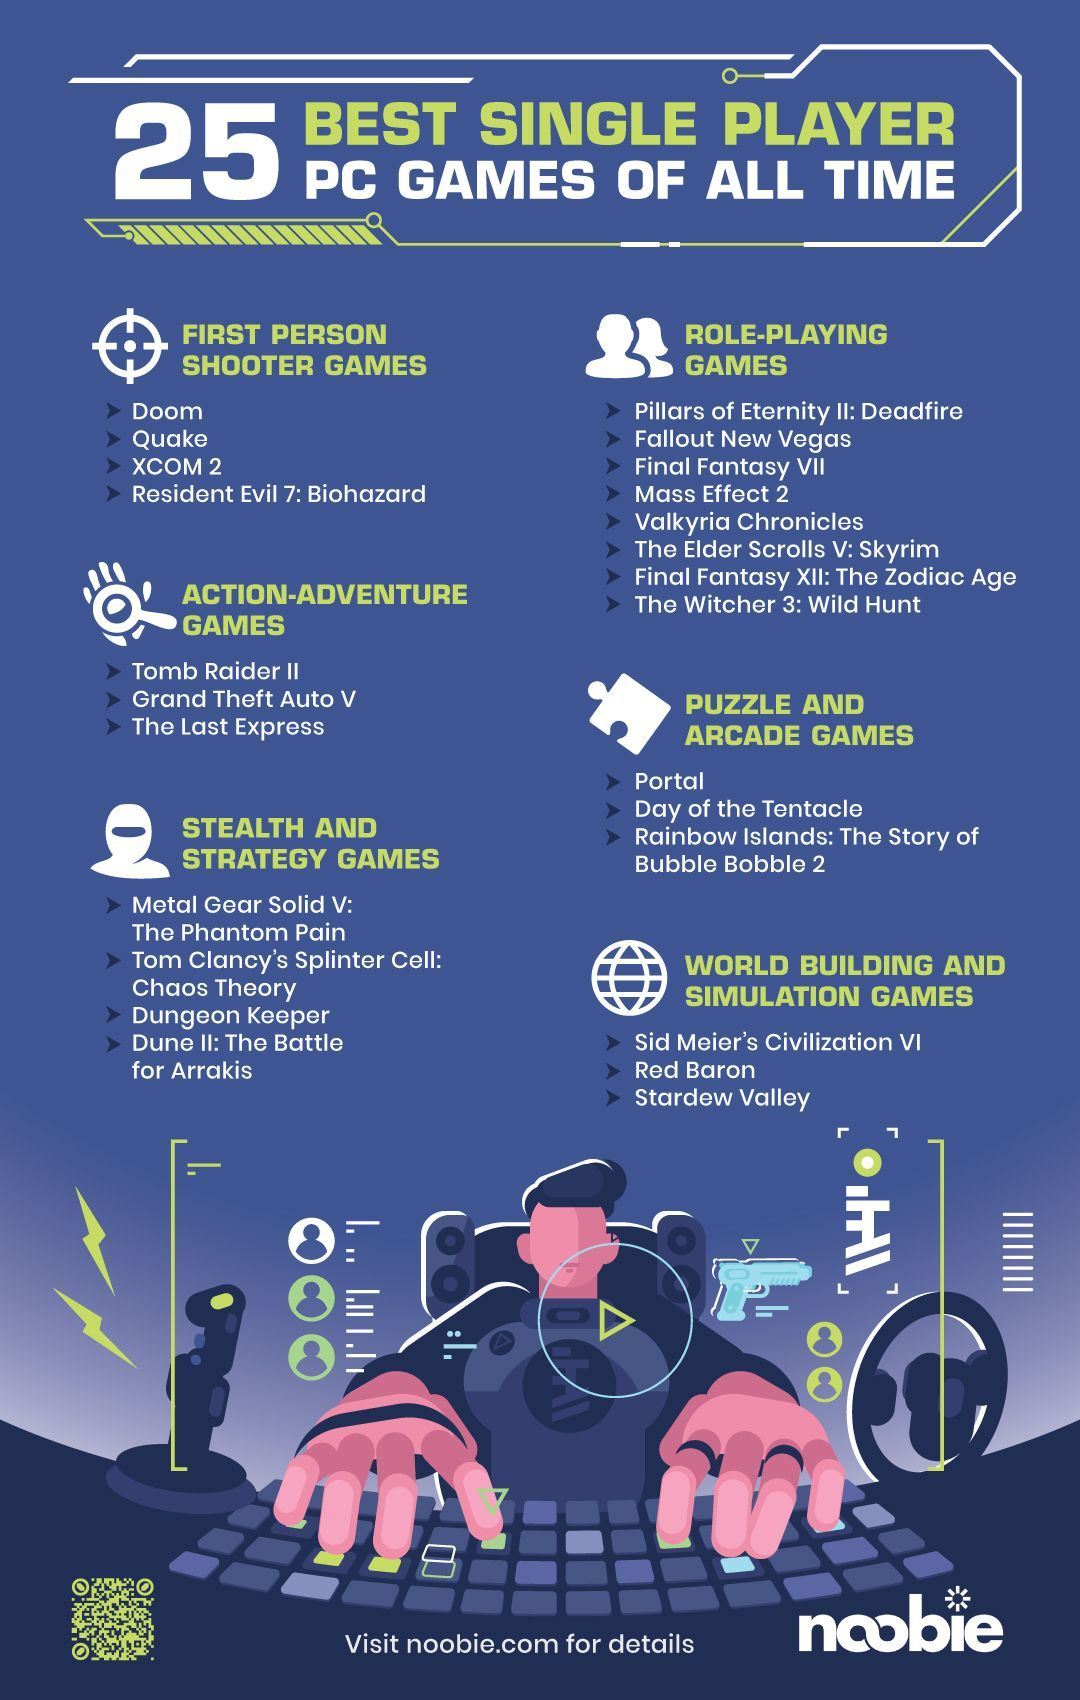 25 Best Single Player PC Games Of All Time [INFOGRAPHIC